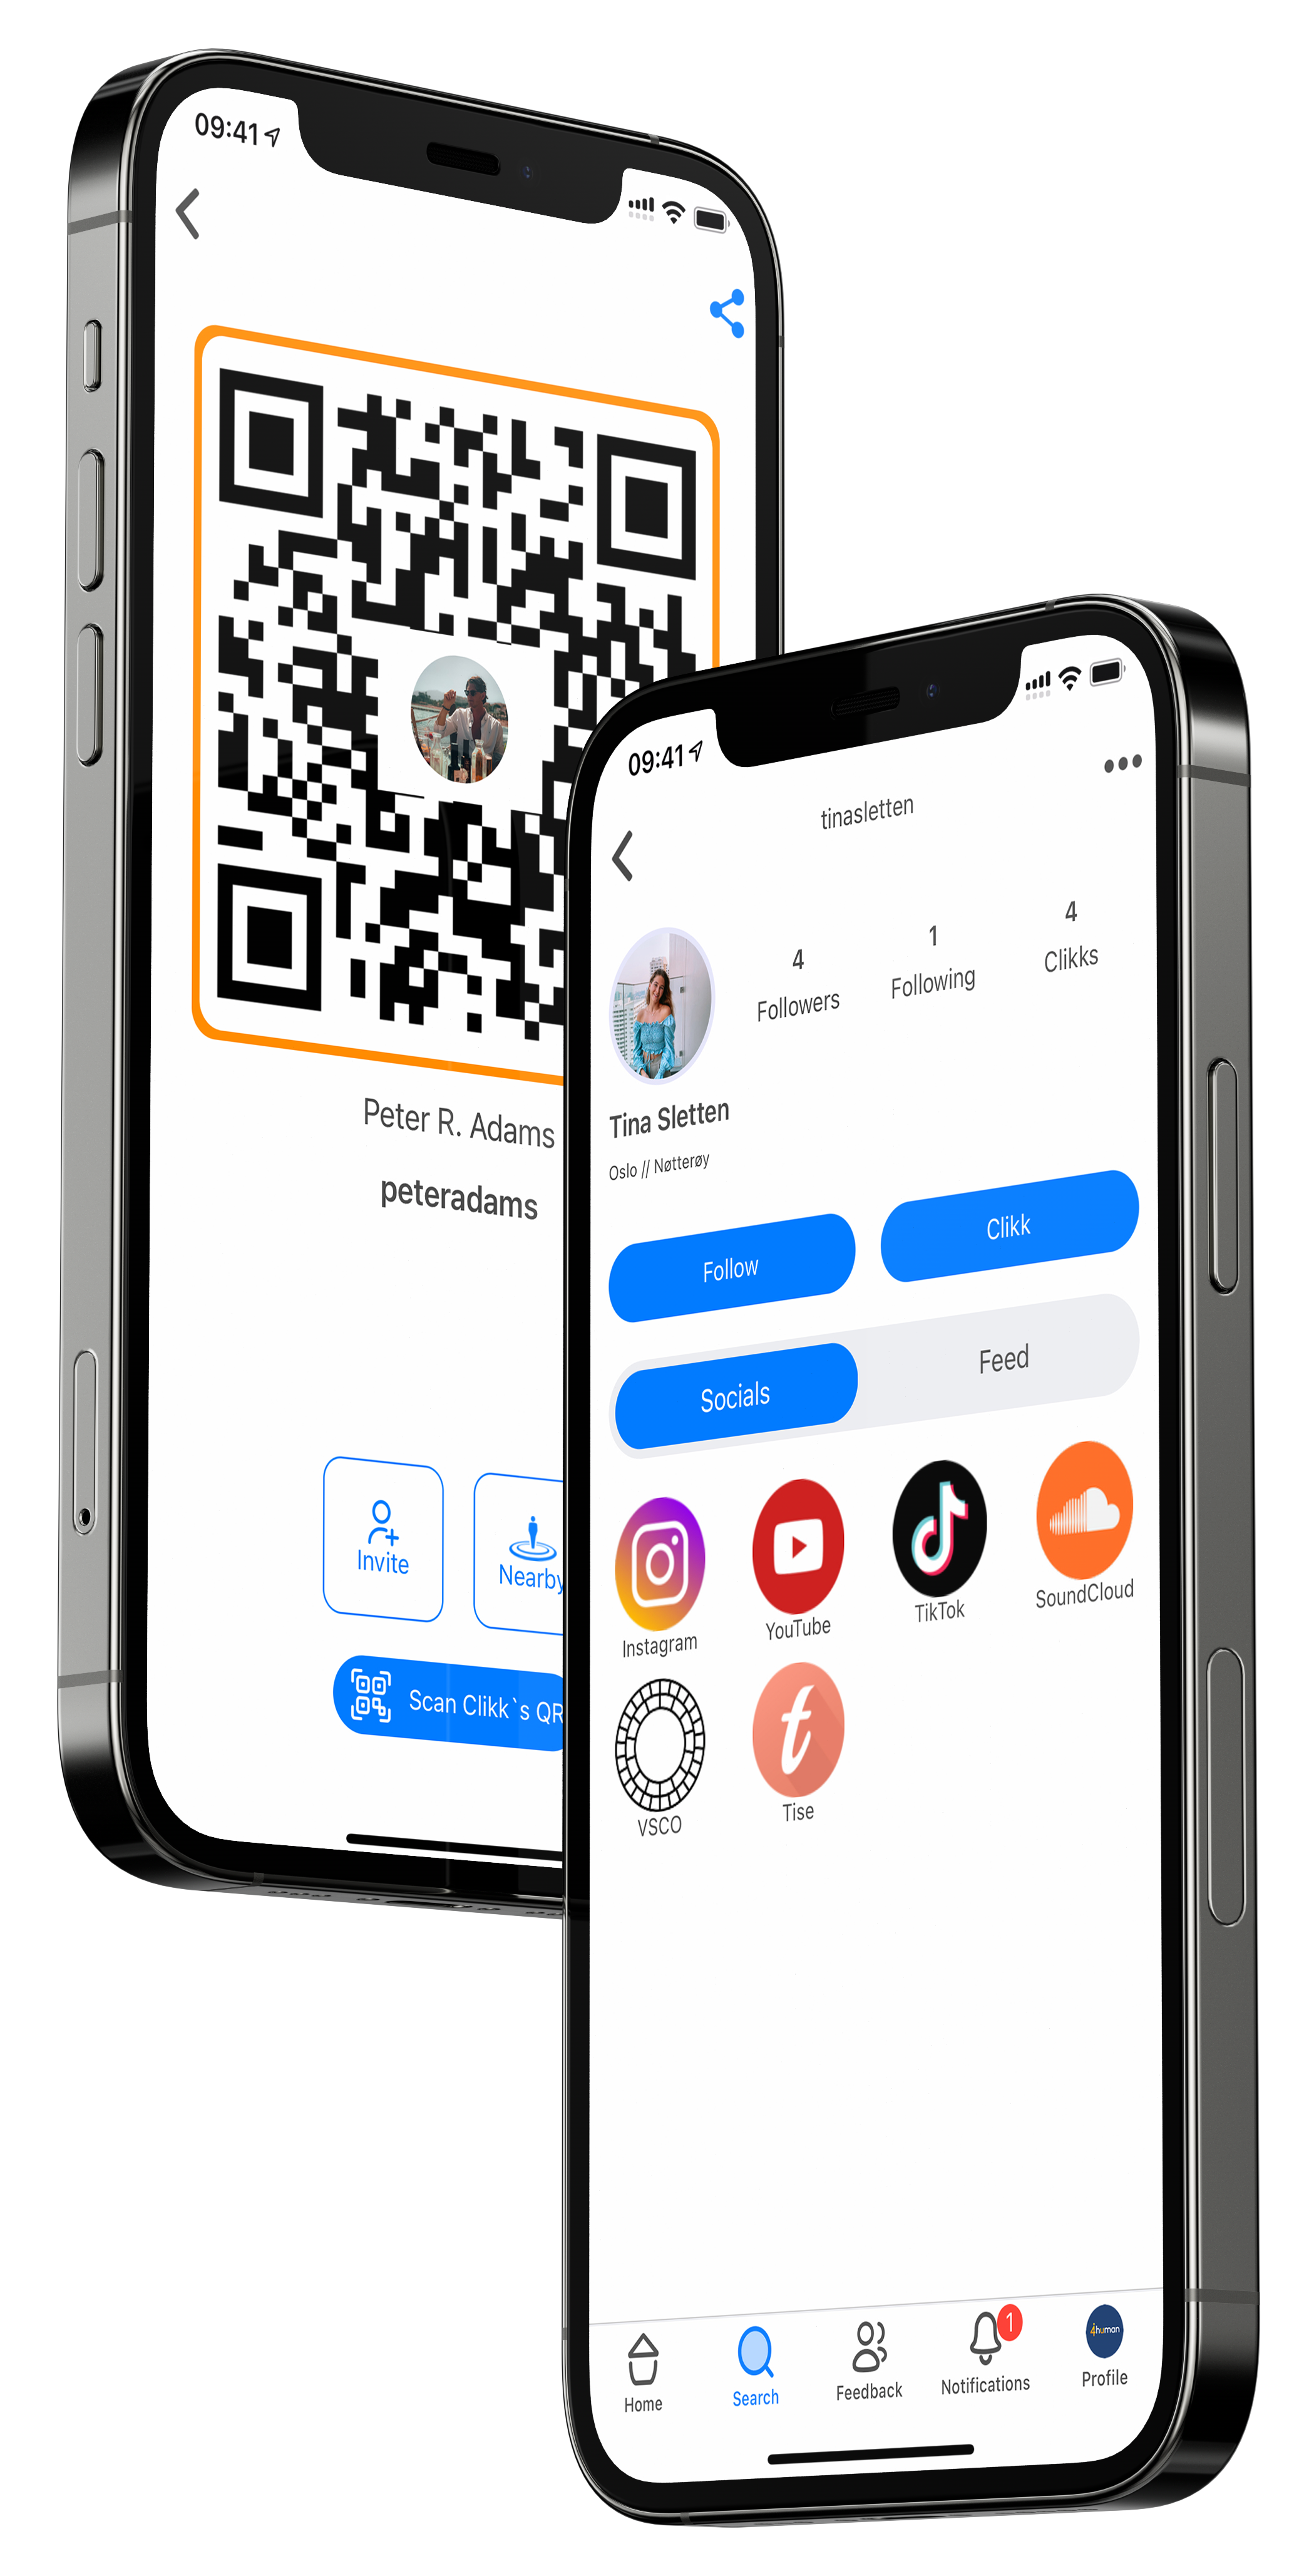 CK mockups iphone12pro mobiles qrcode profile